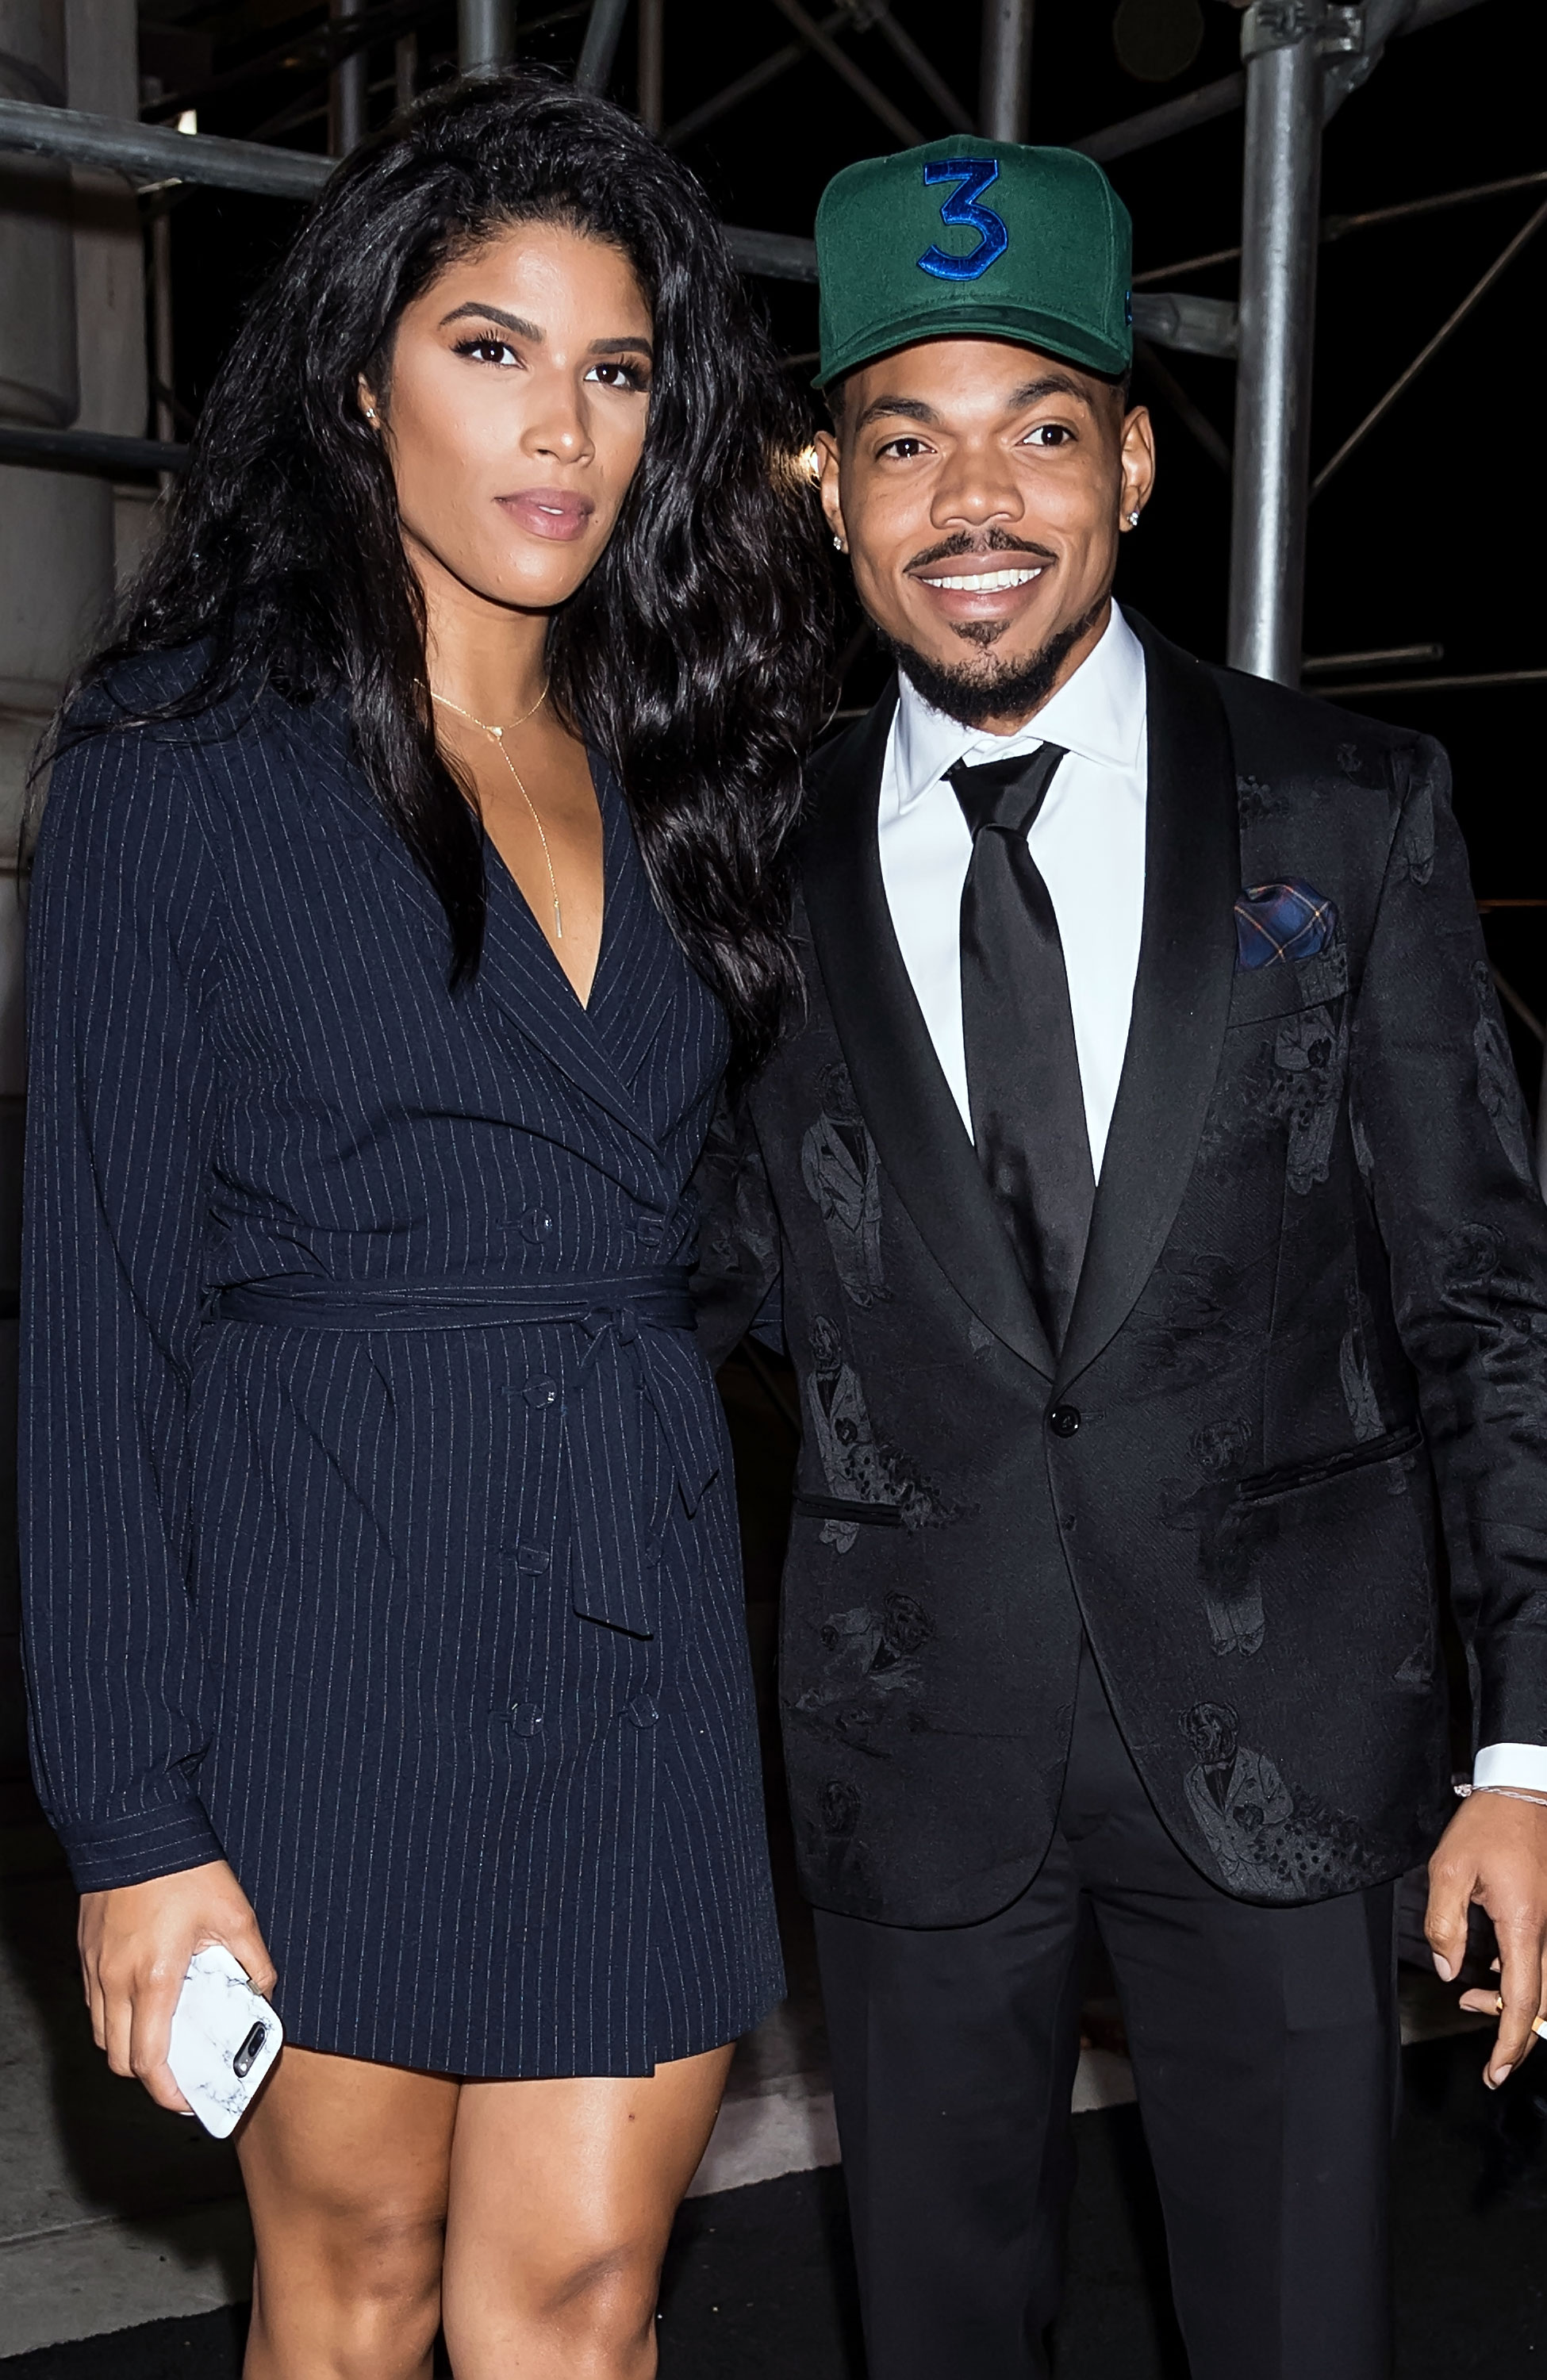 """Chance the Rapper and Kirsten Corley Celebrity Weddings 2019 - The Chicago-born artist tied the knot with his longtime love at The Resort at Pelican Hill in Newport Beach, California, on March 9. """"It was a beautiful ceremony,"""" a source told Us, adding that guests flocked to a photo booth during the reception."""